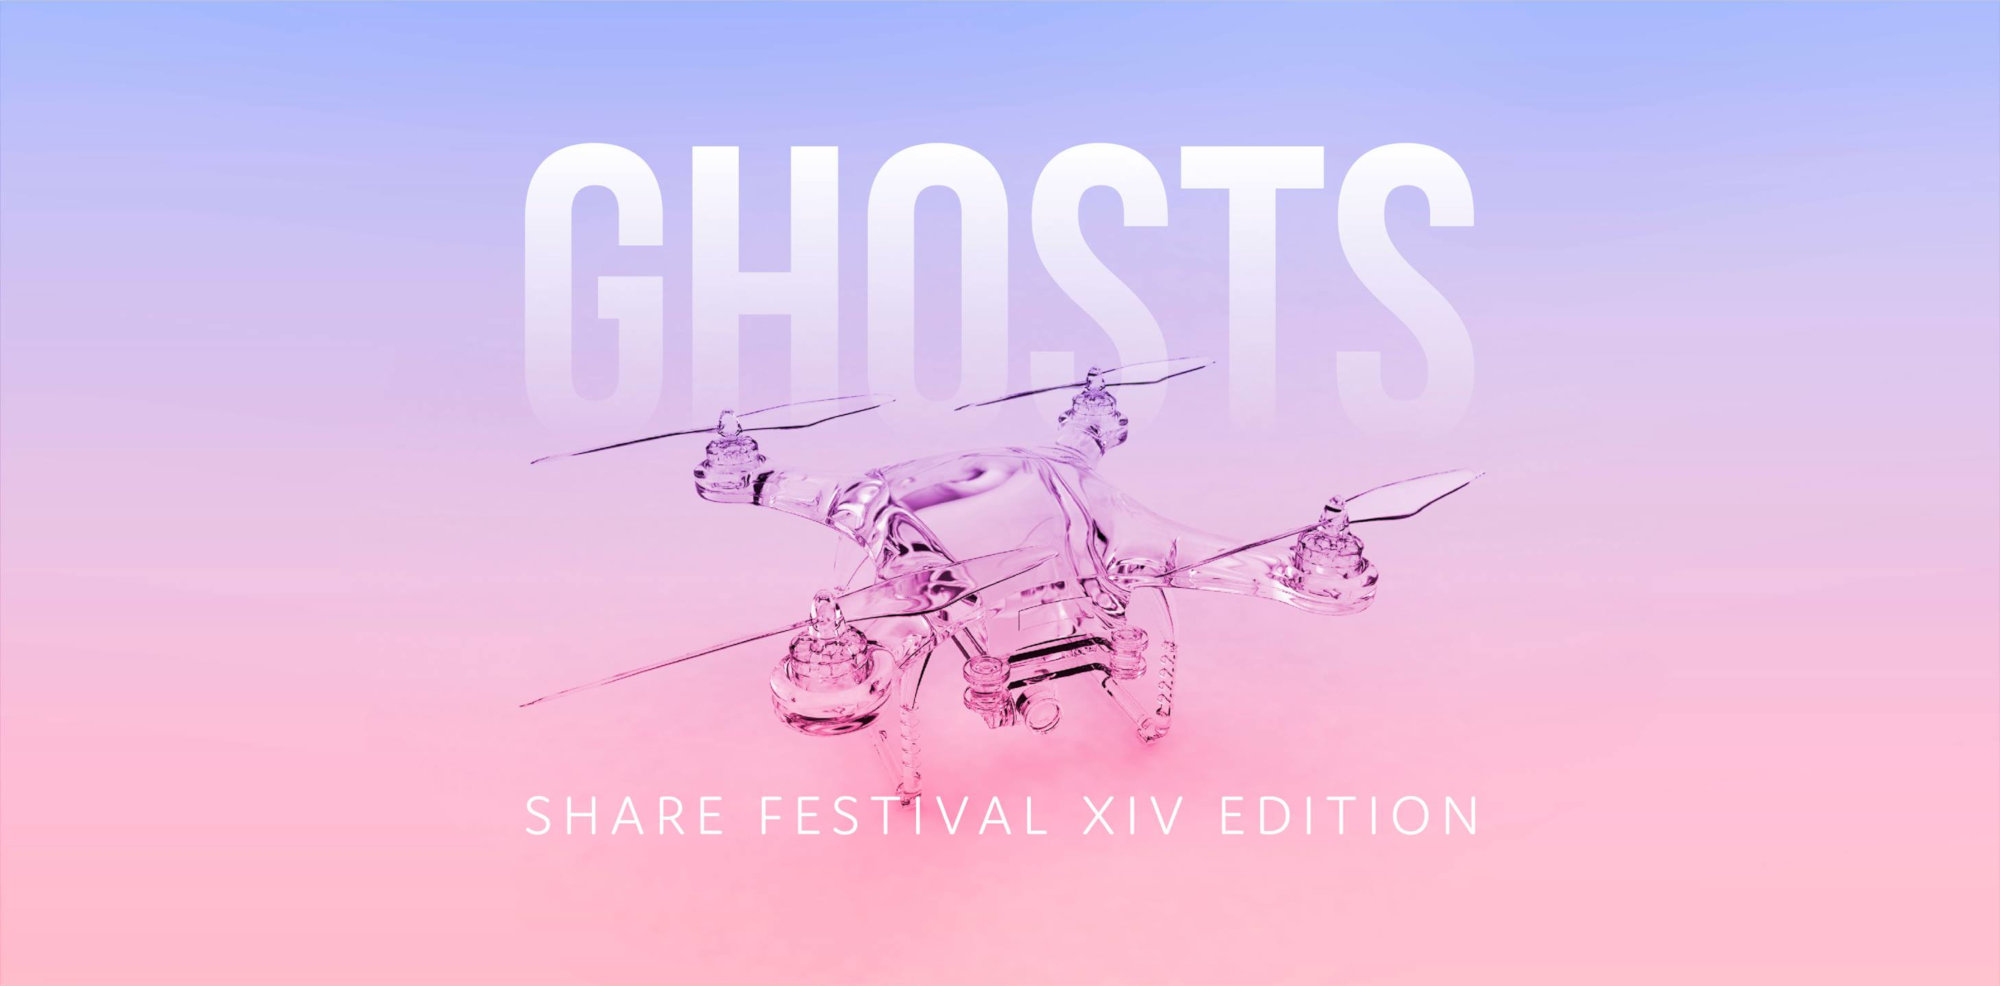 Share Prize - Ghosts